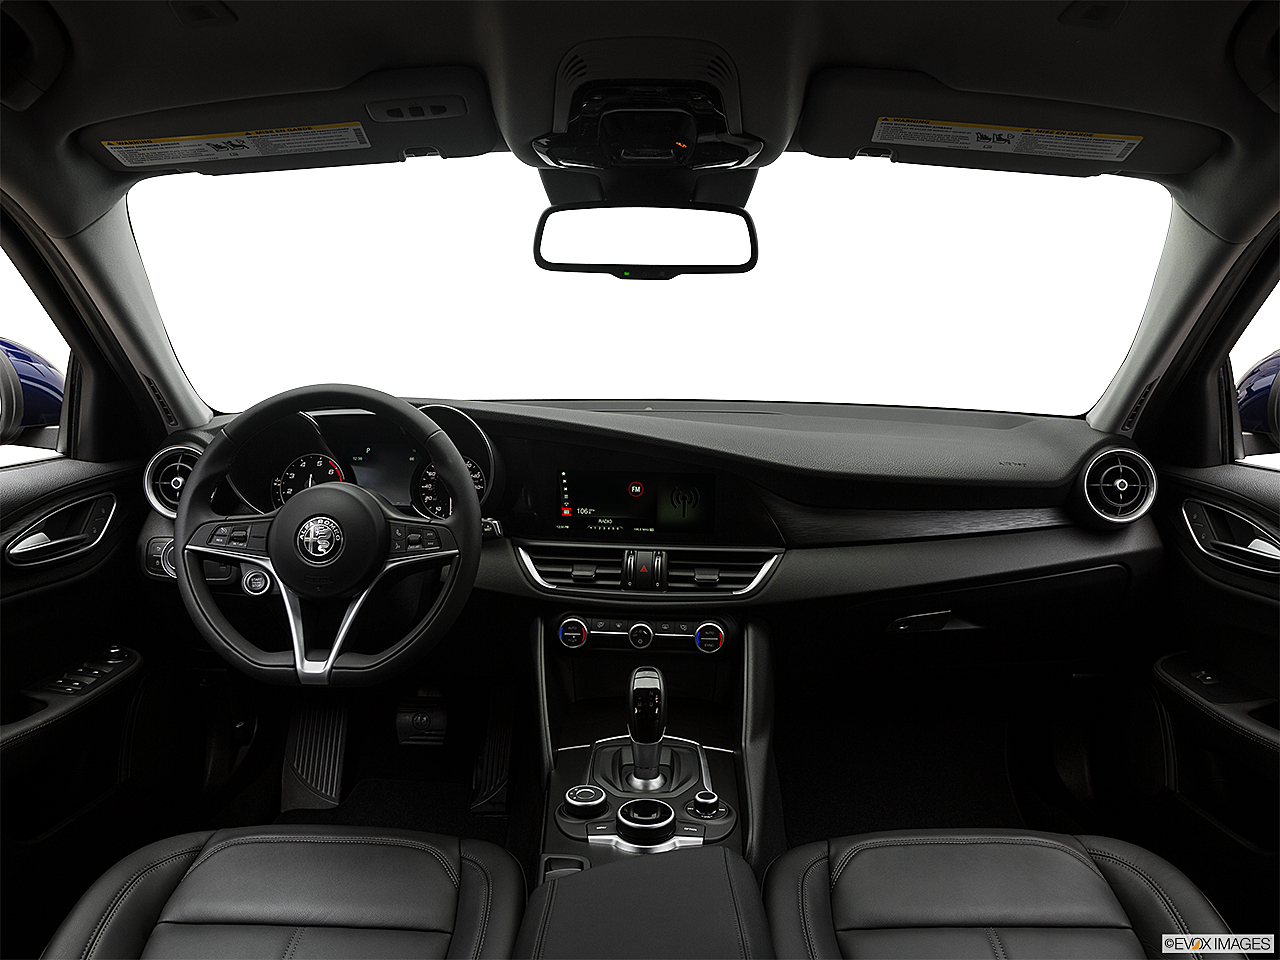 2017 Alfa Romeo Giulia, centered wide dash shot